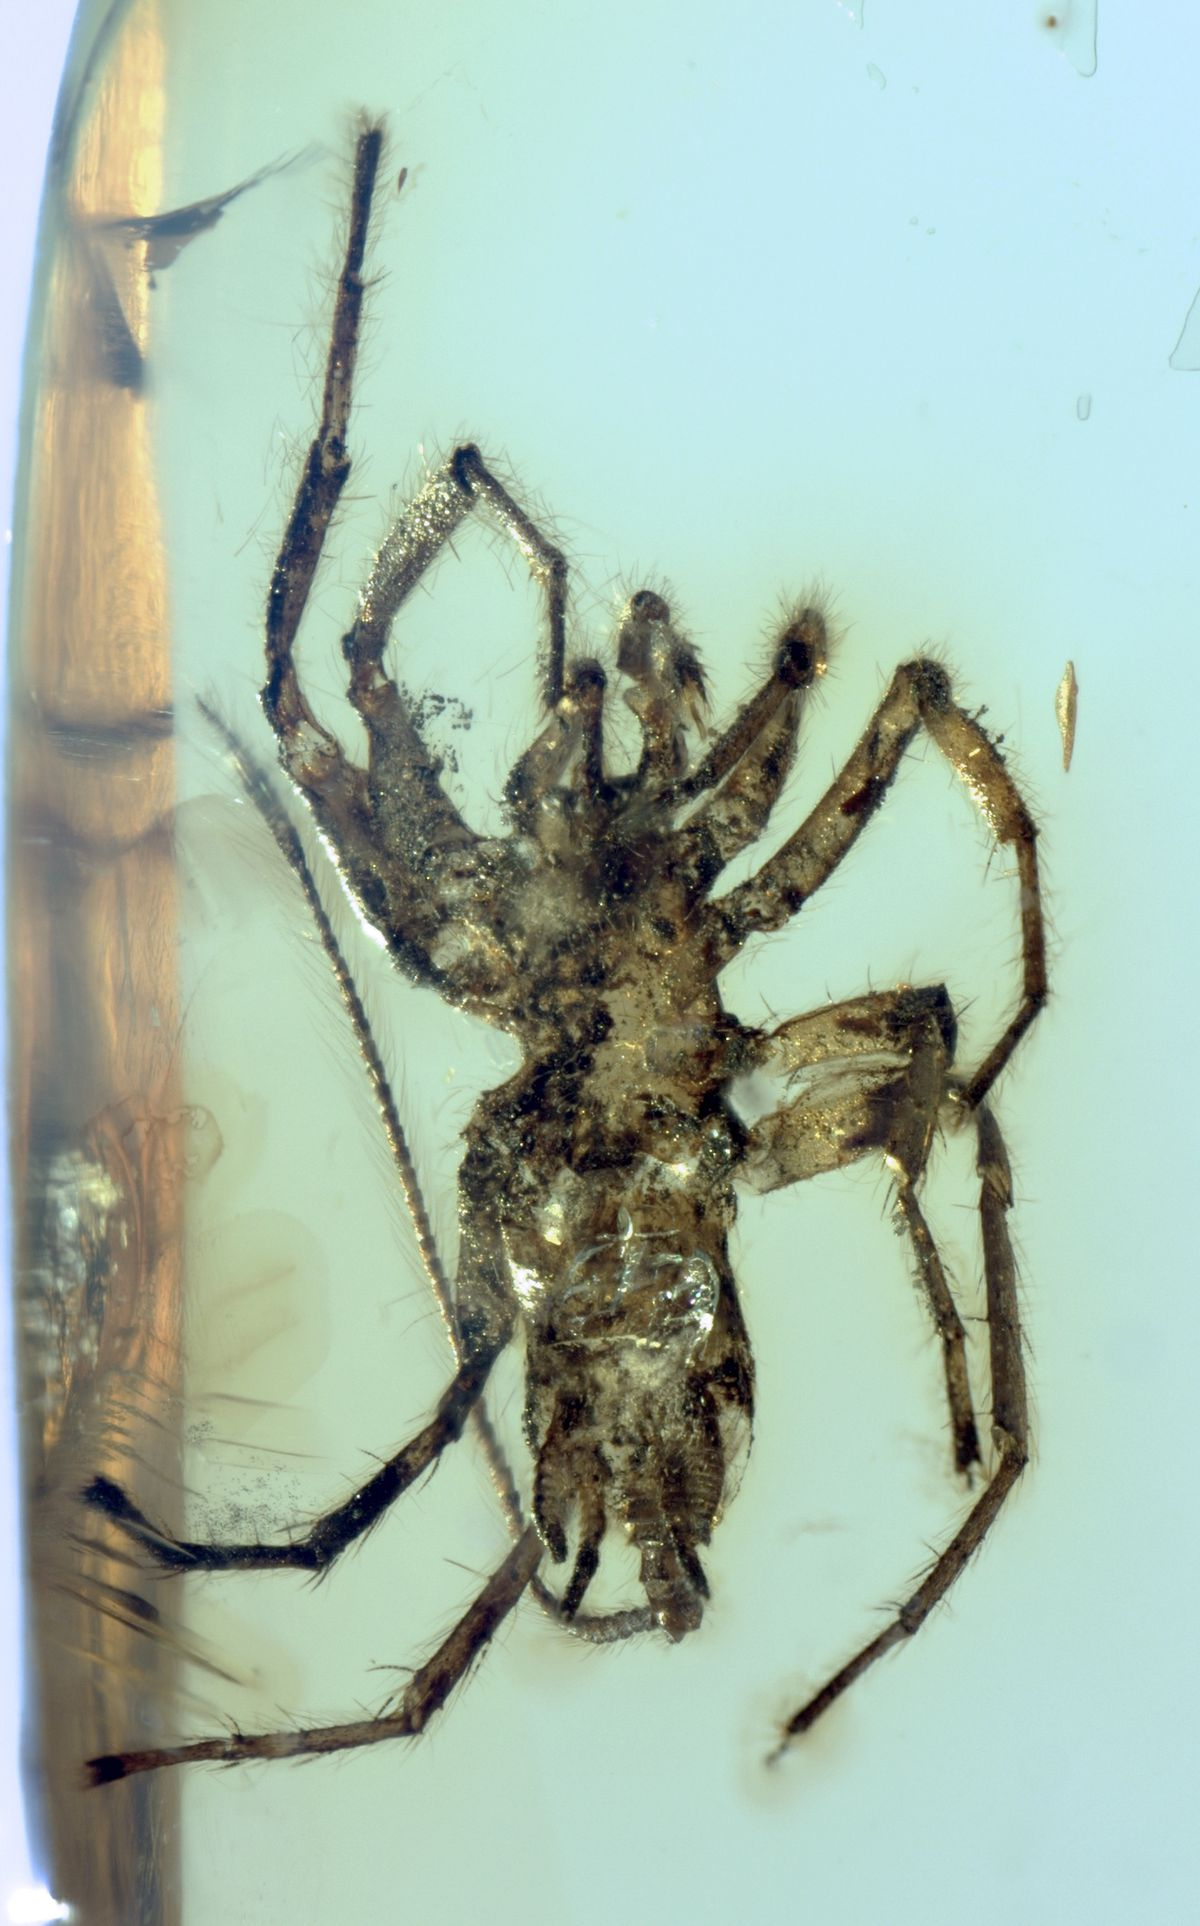 The specimens had spinnerets, or silk-spinning organs, jutting from the bottom of their abdomens —a feature they share with modern-day spiders.